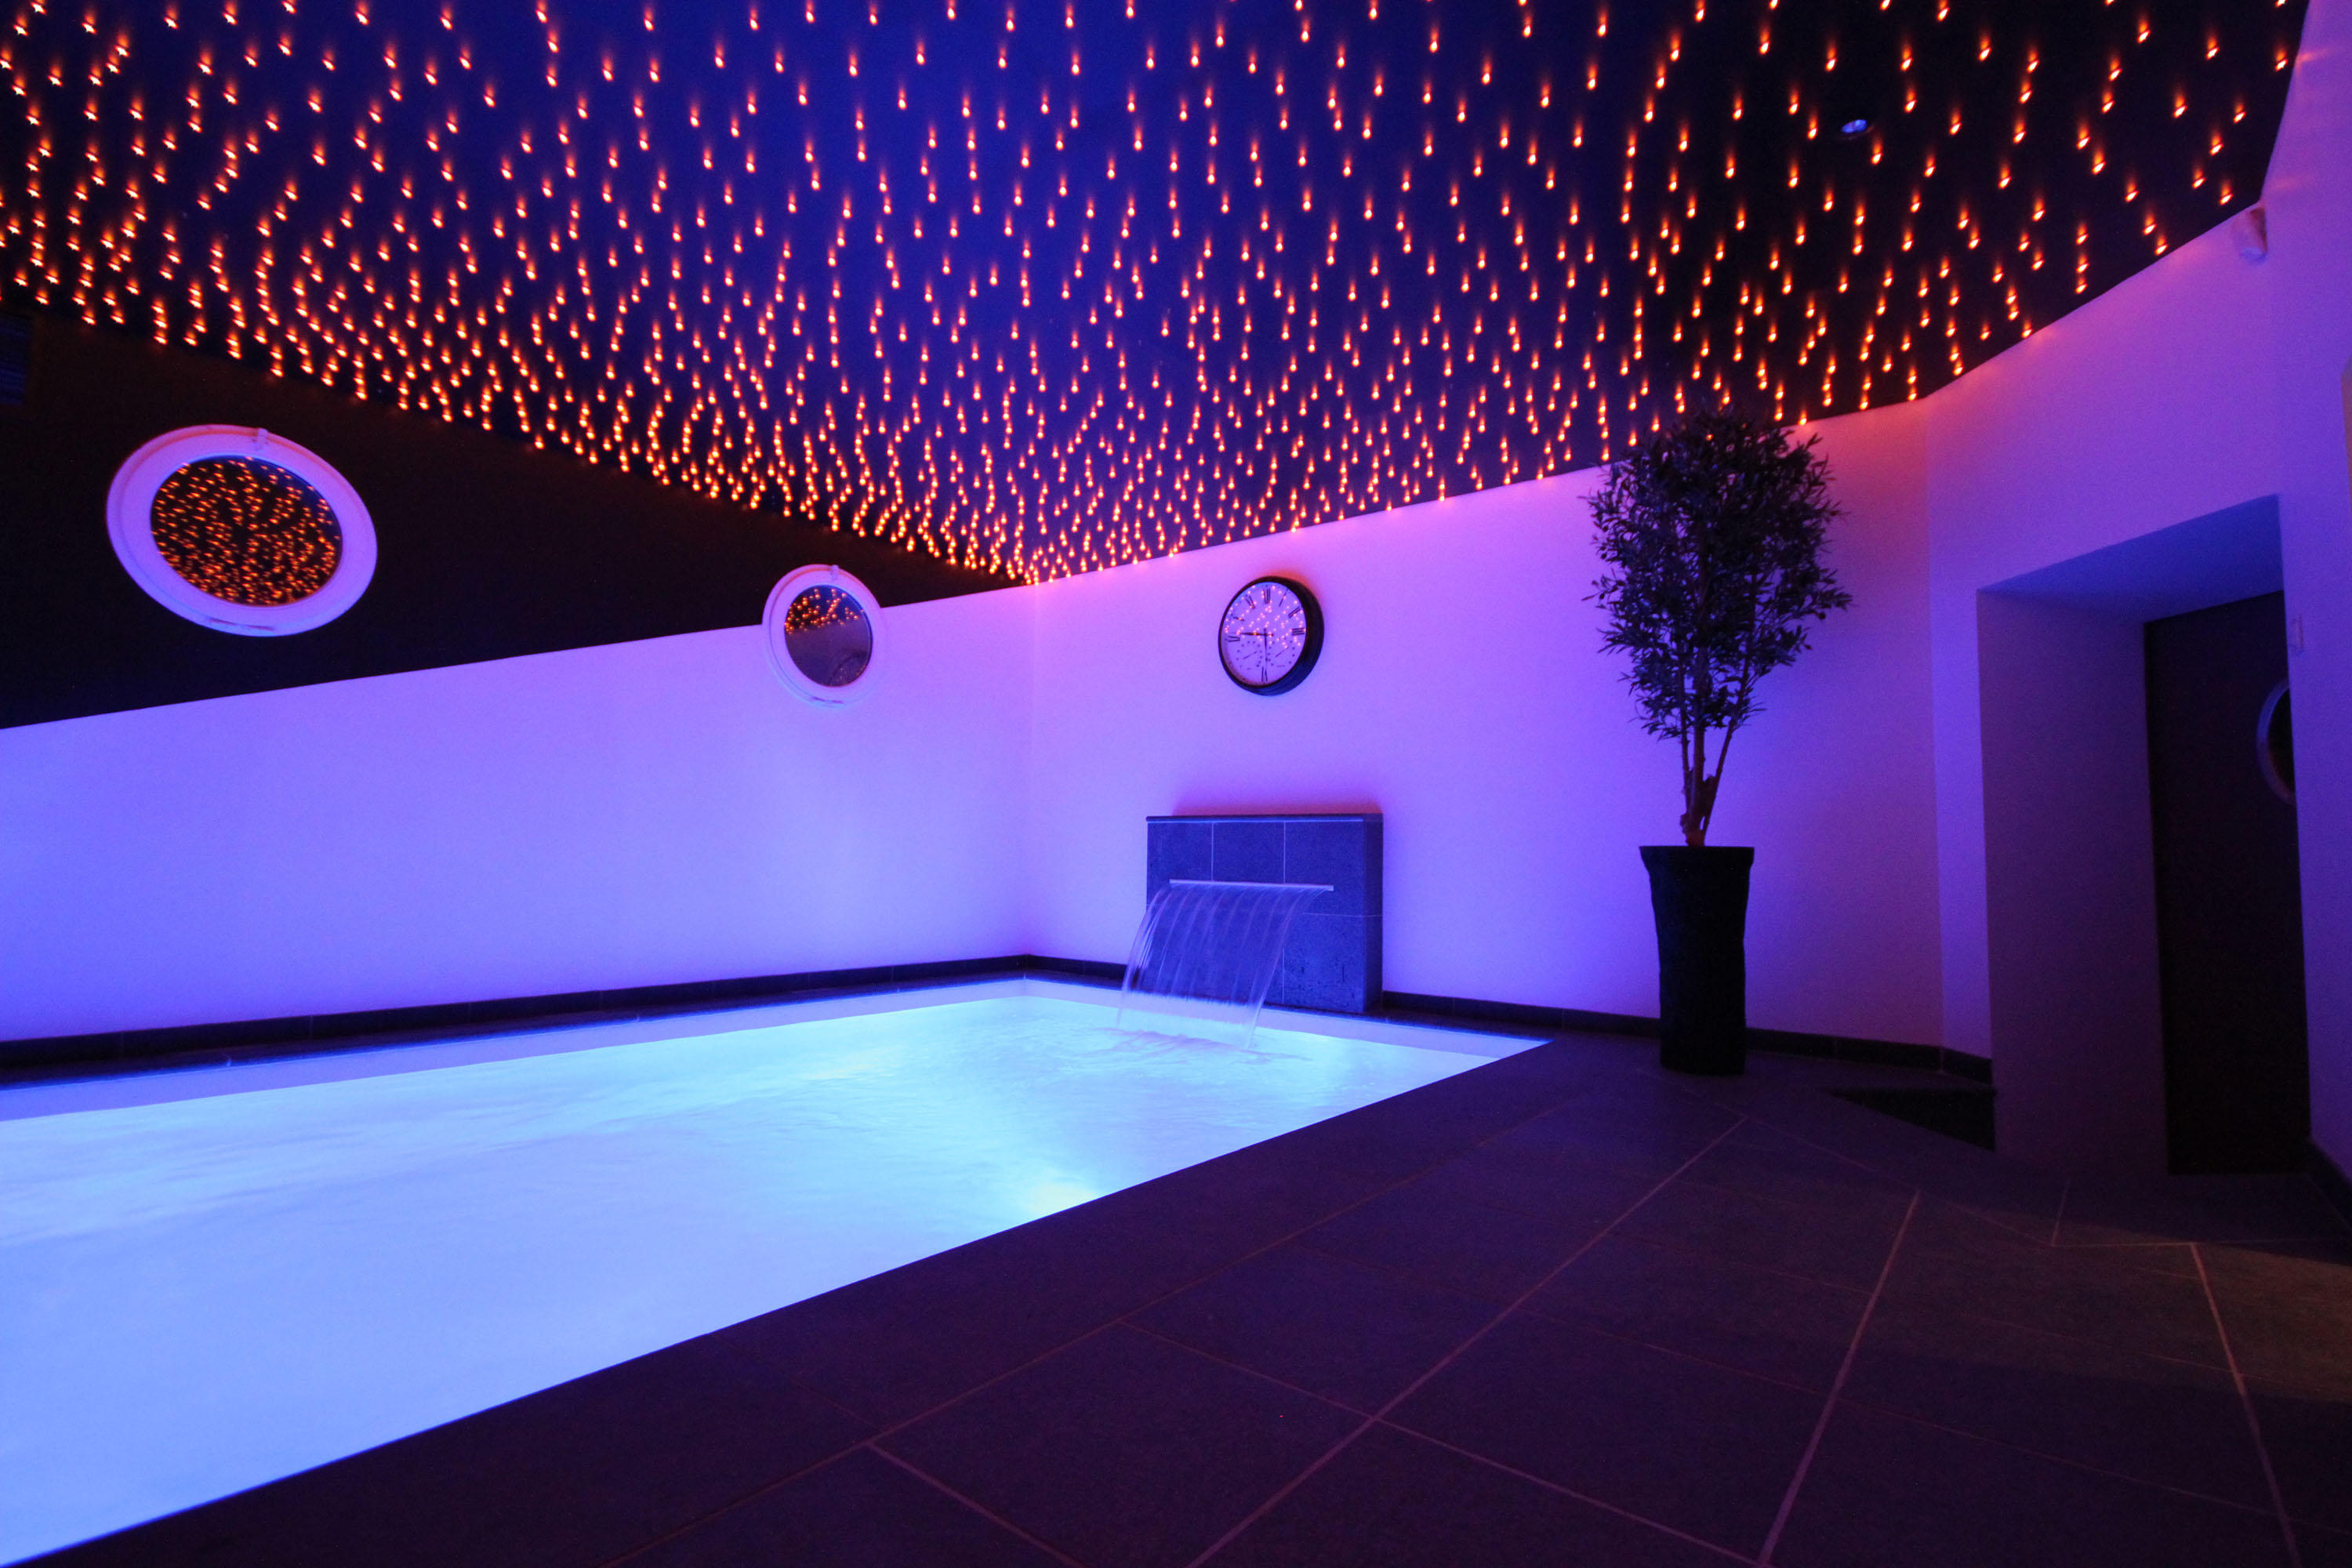 Indoor home pool for Desing interieur